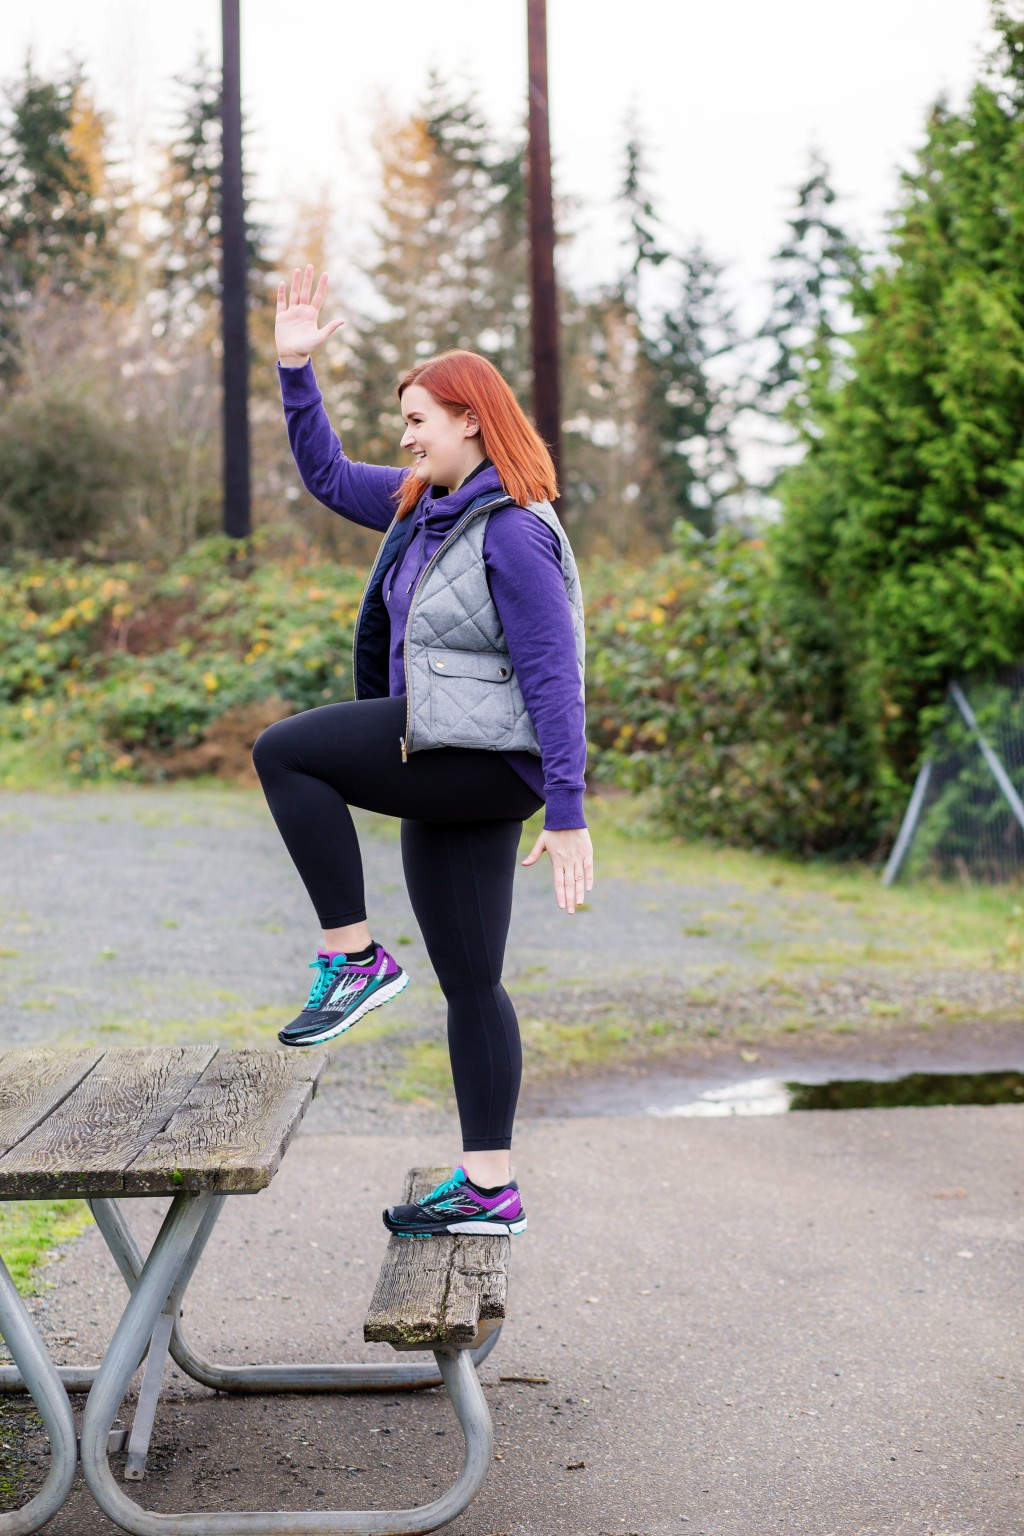 15-excercising-outdoors